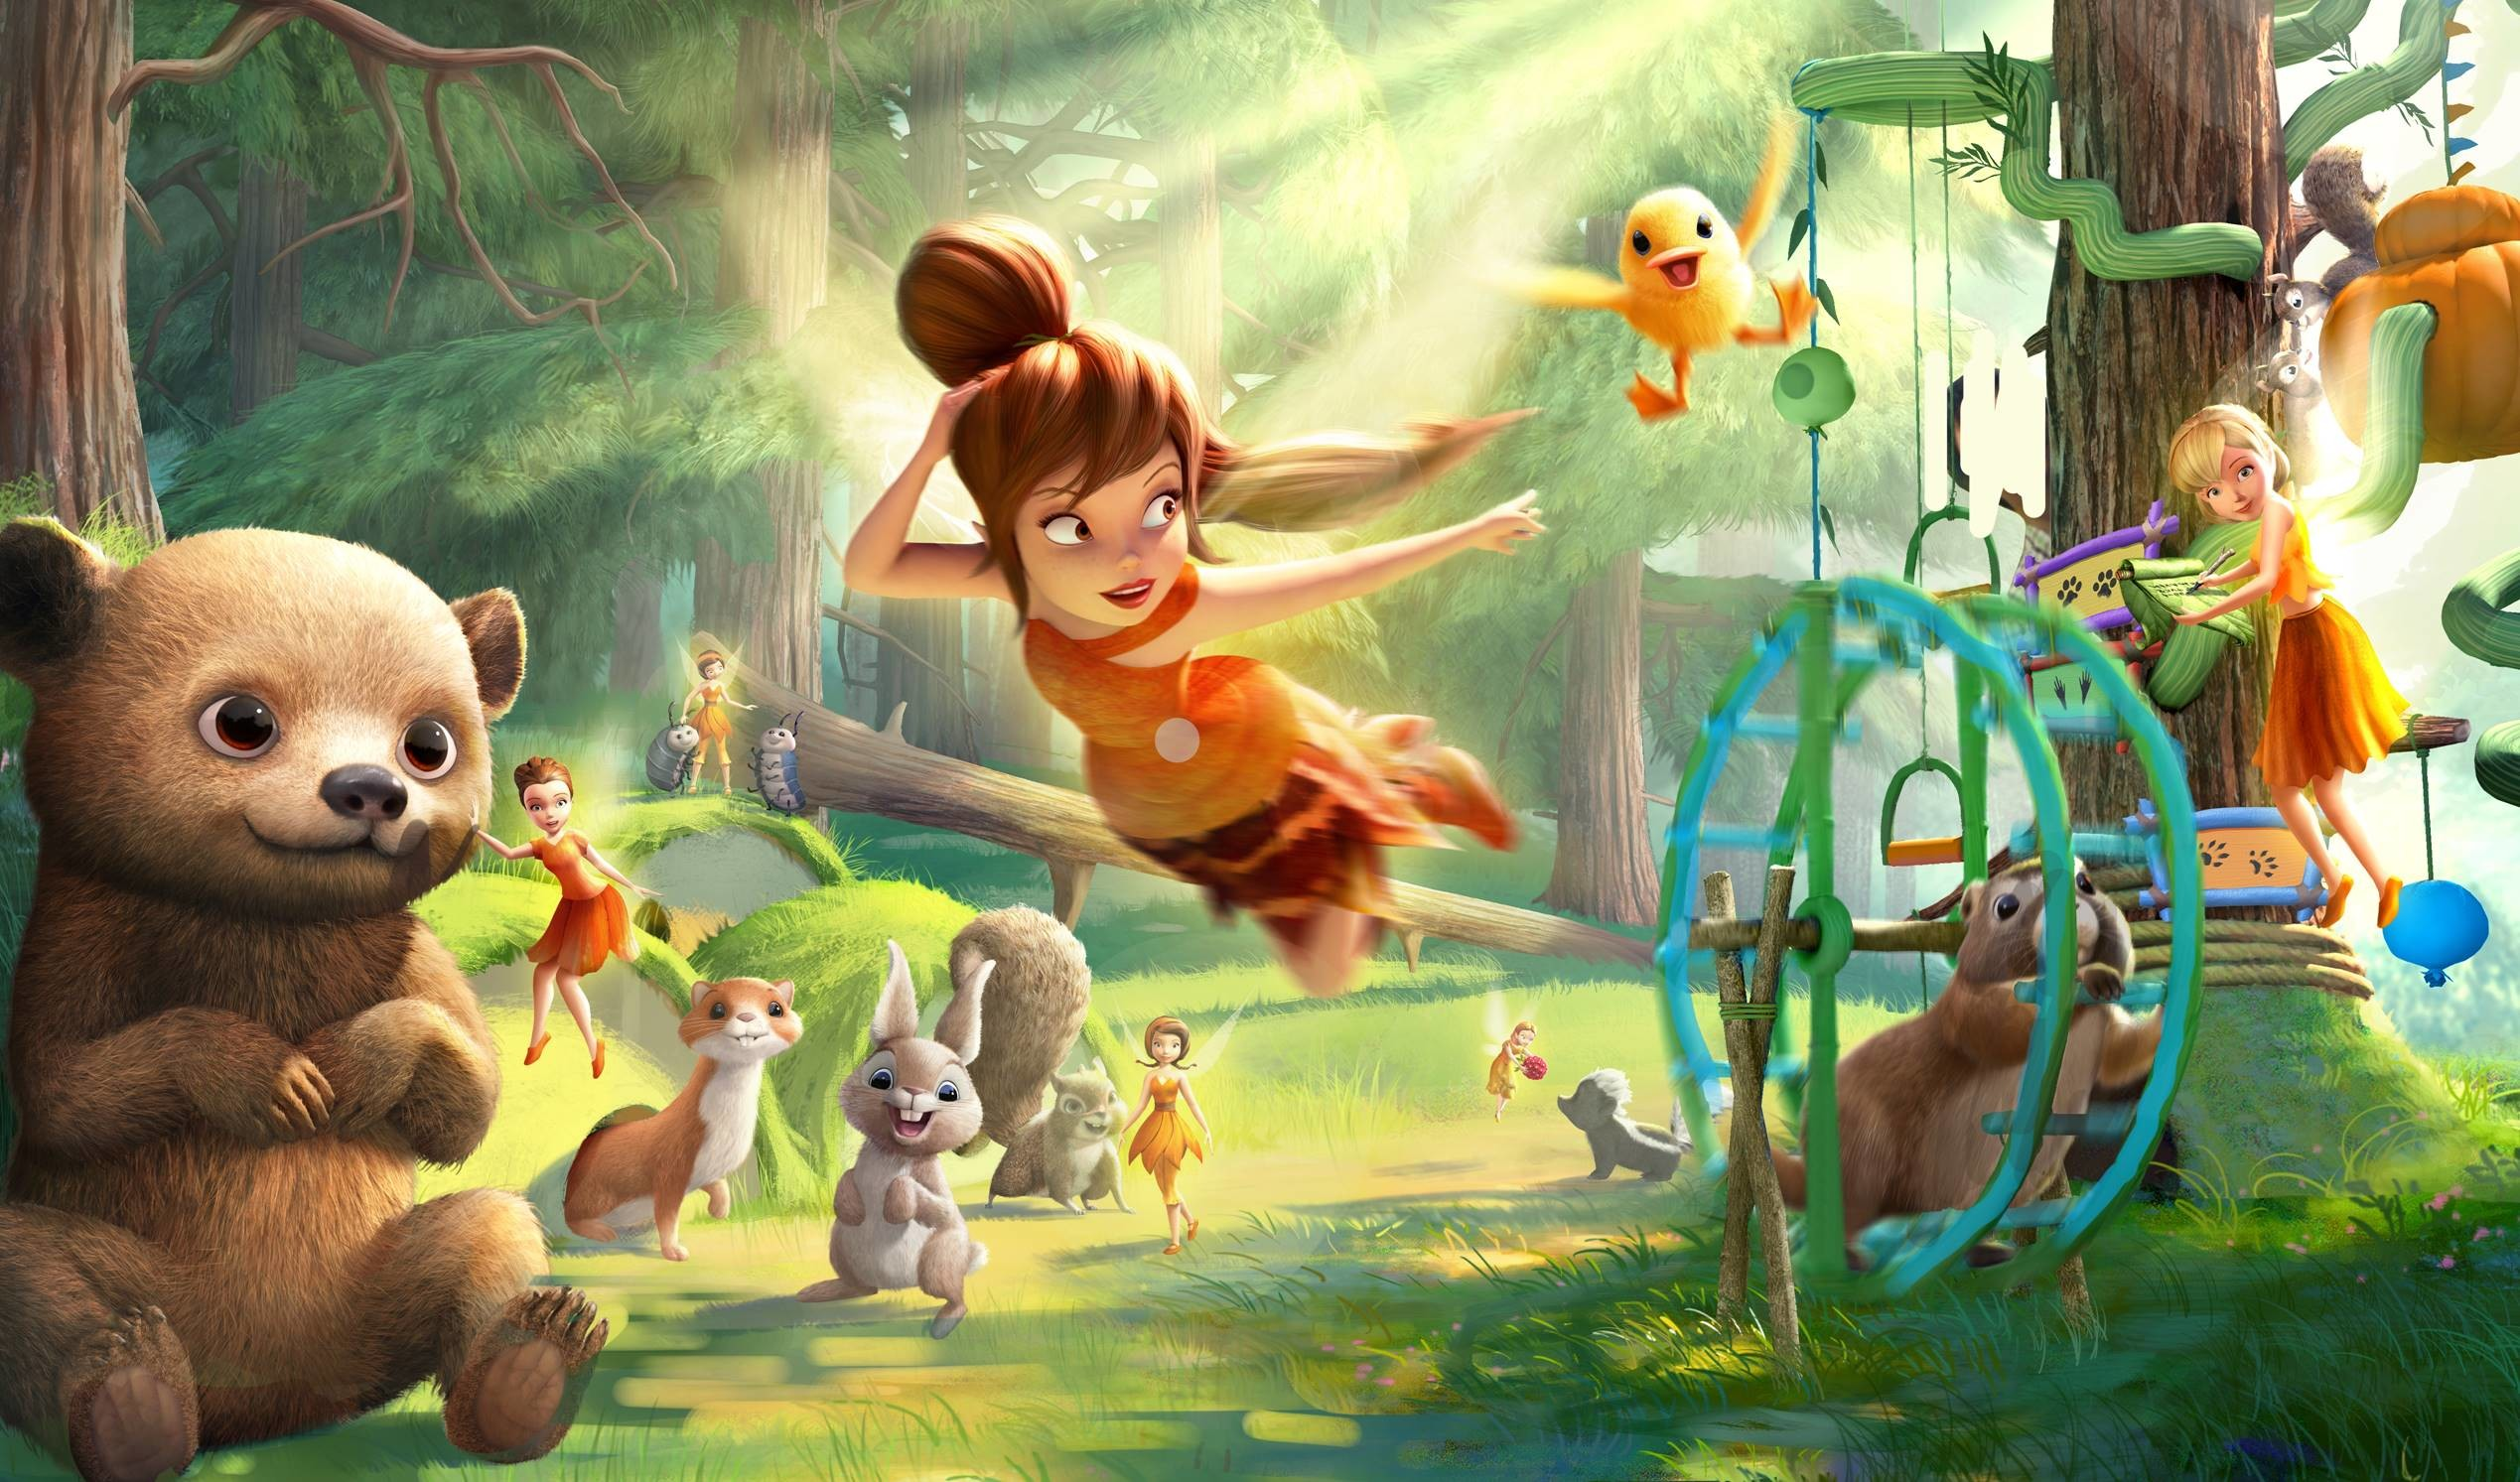 2538x1493 Nice wallpapers Tinker Bell And The Legend Of The NeverBeast px